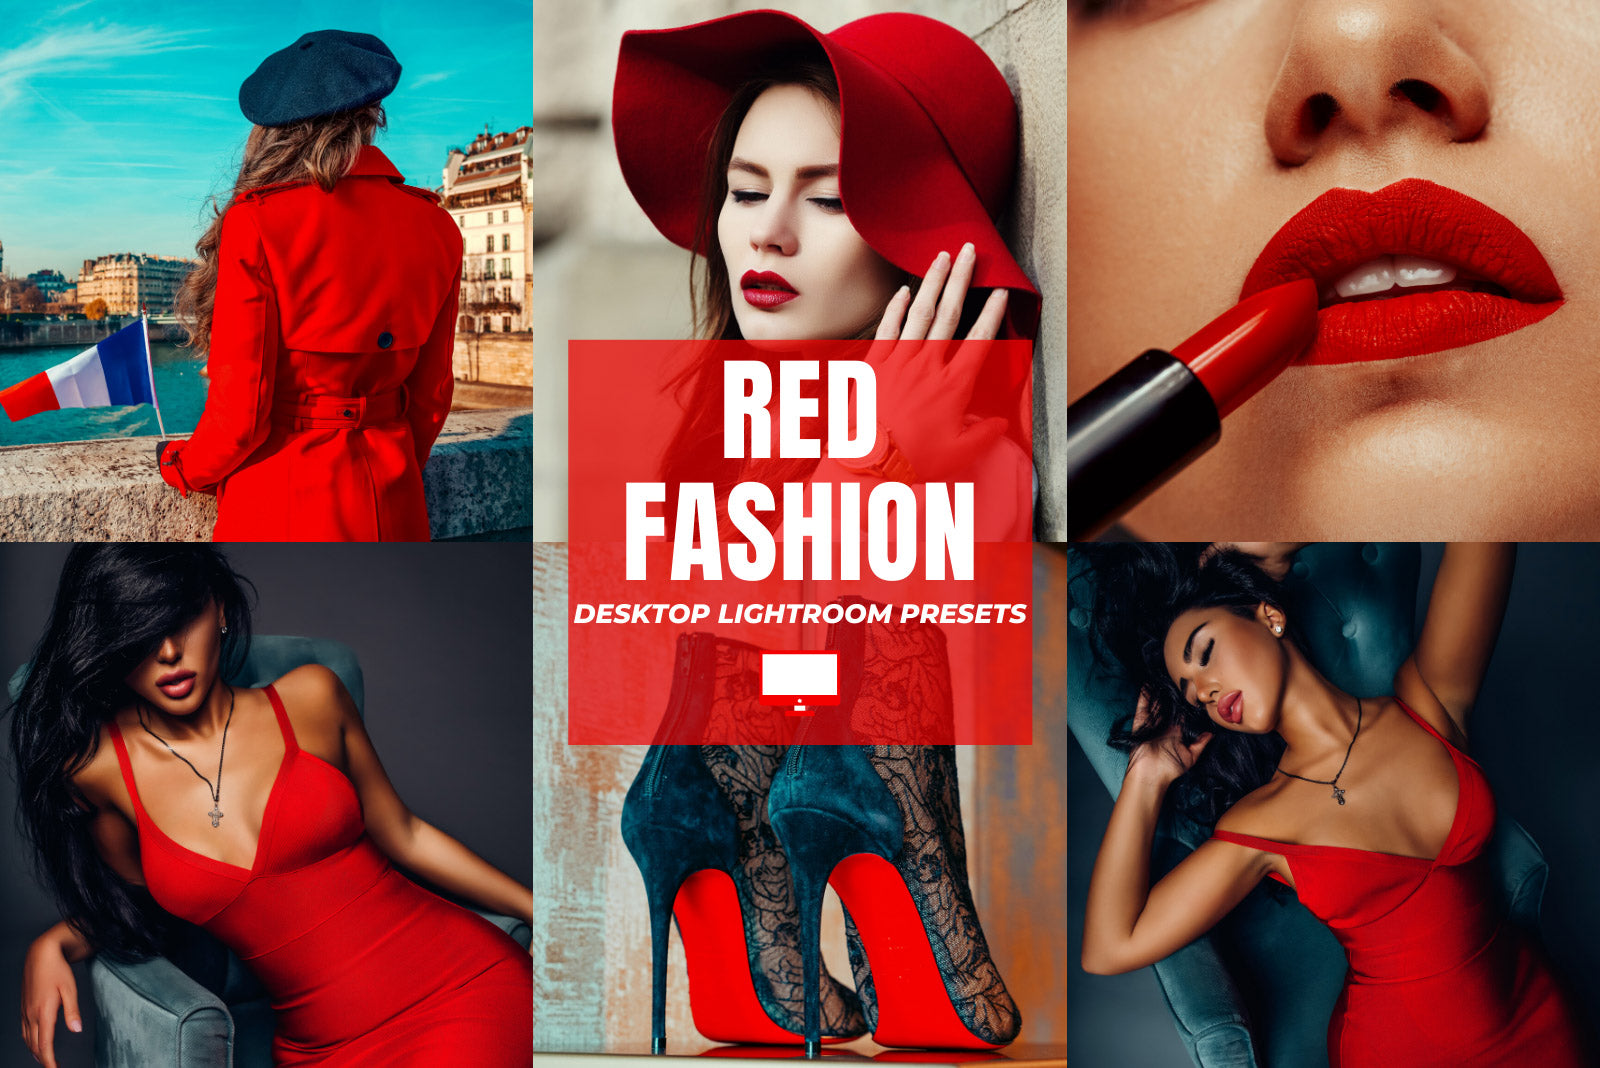 RED FASHION DESKTOP LIGHTROOM PRESETS by The Viral Presets